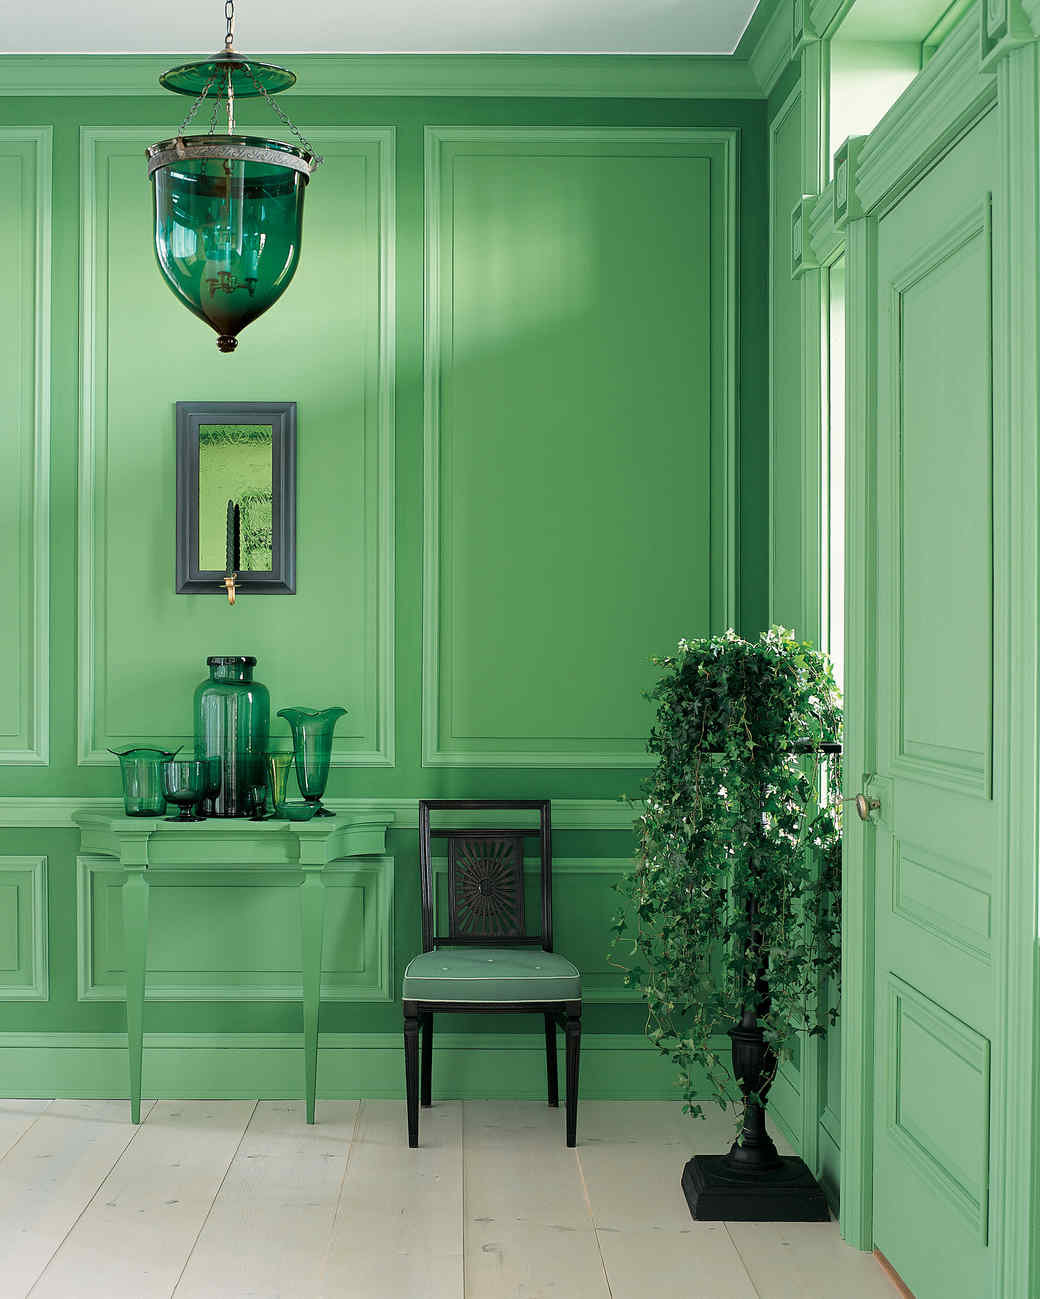 Verdant Passage & Green Rooms | Martha Stewart